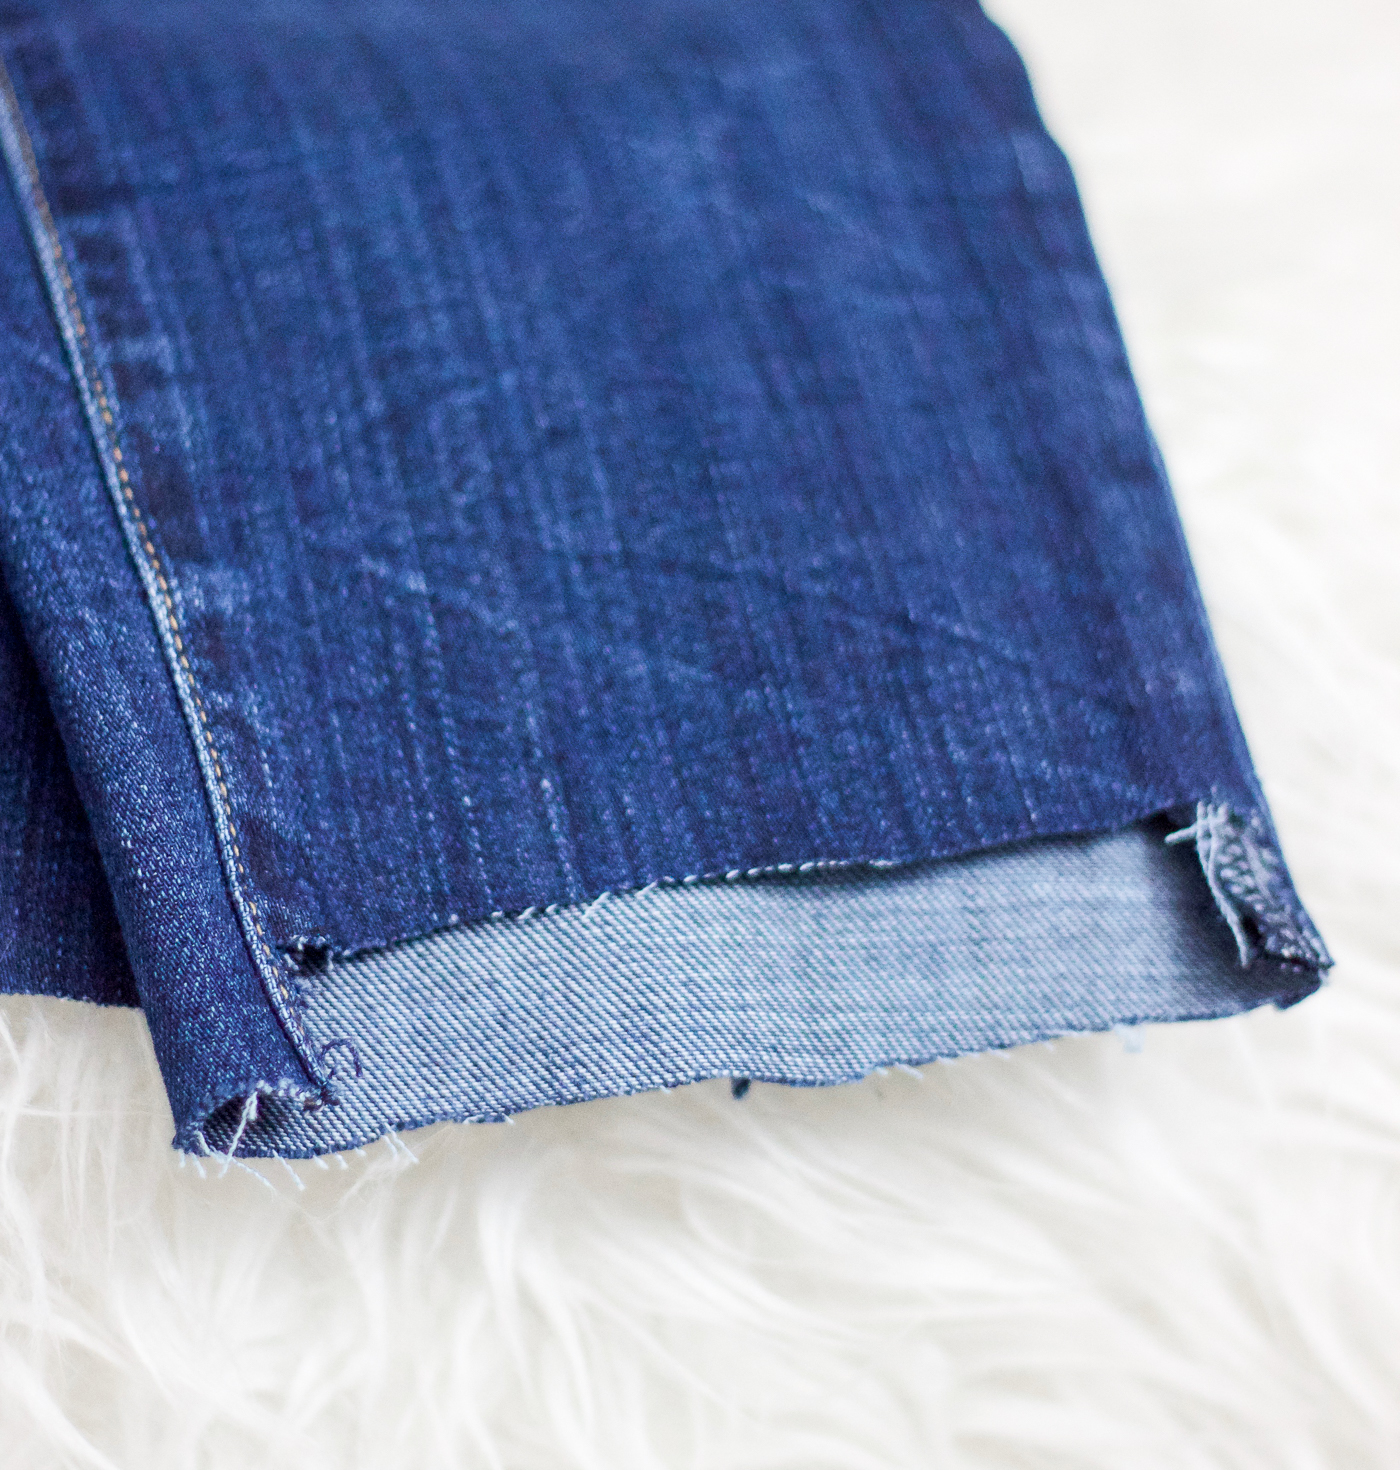 A quick and easy tutorial for how to DIY step-hem jeans yourself